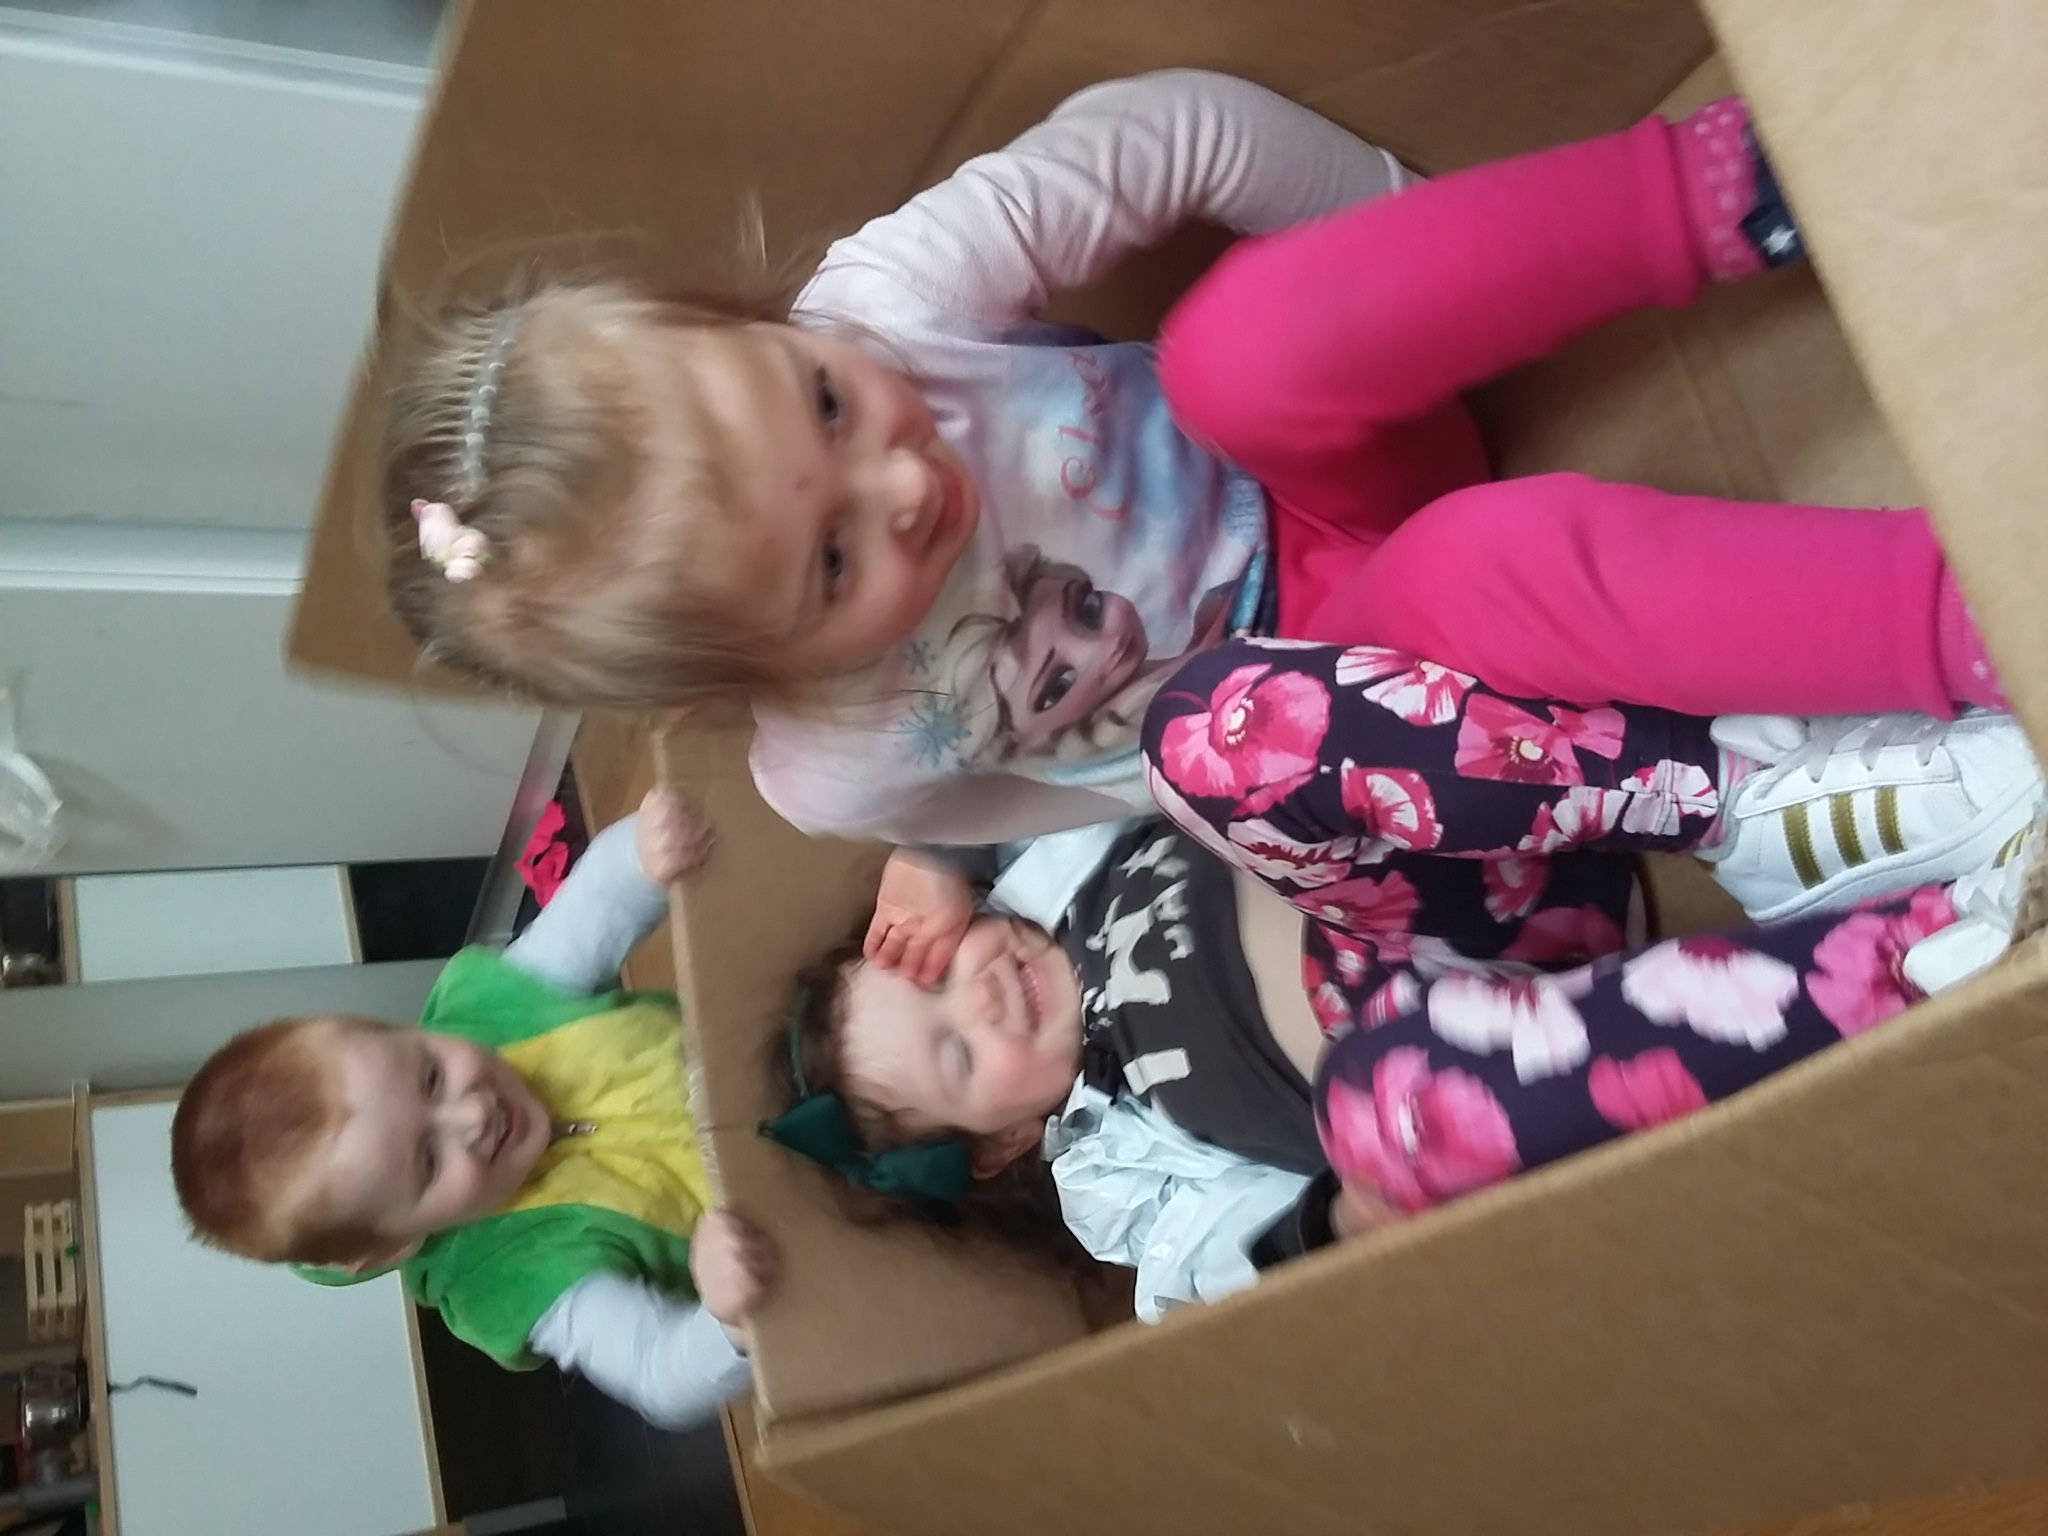 Who needs toys when you have a box!